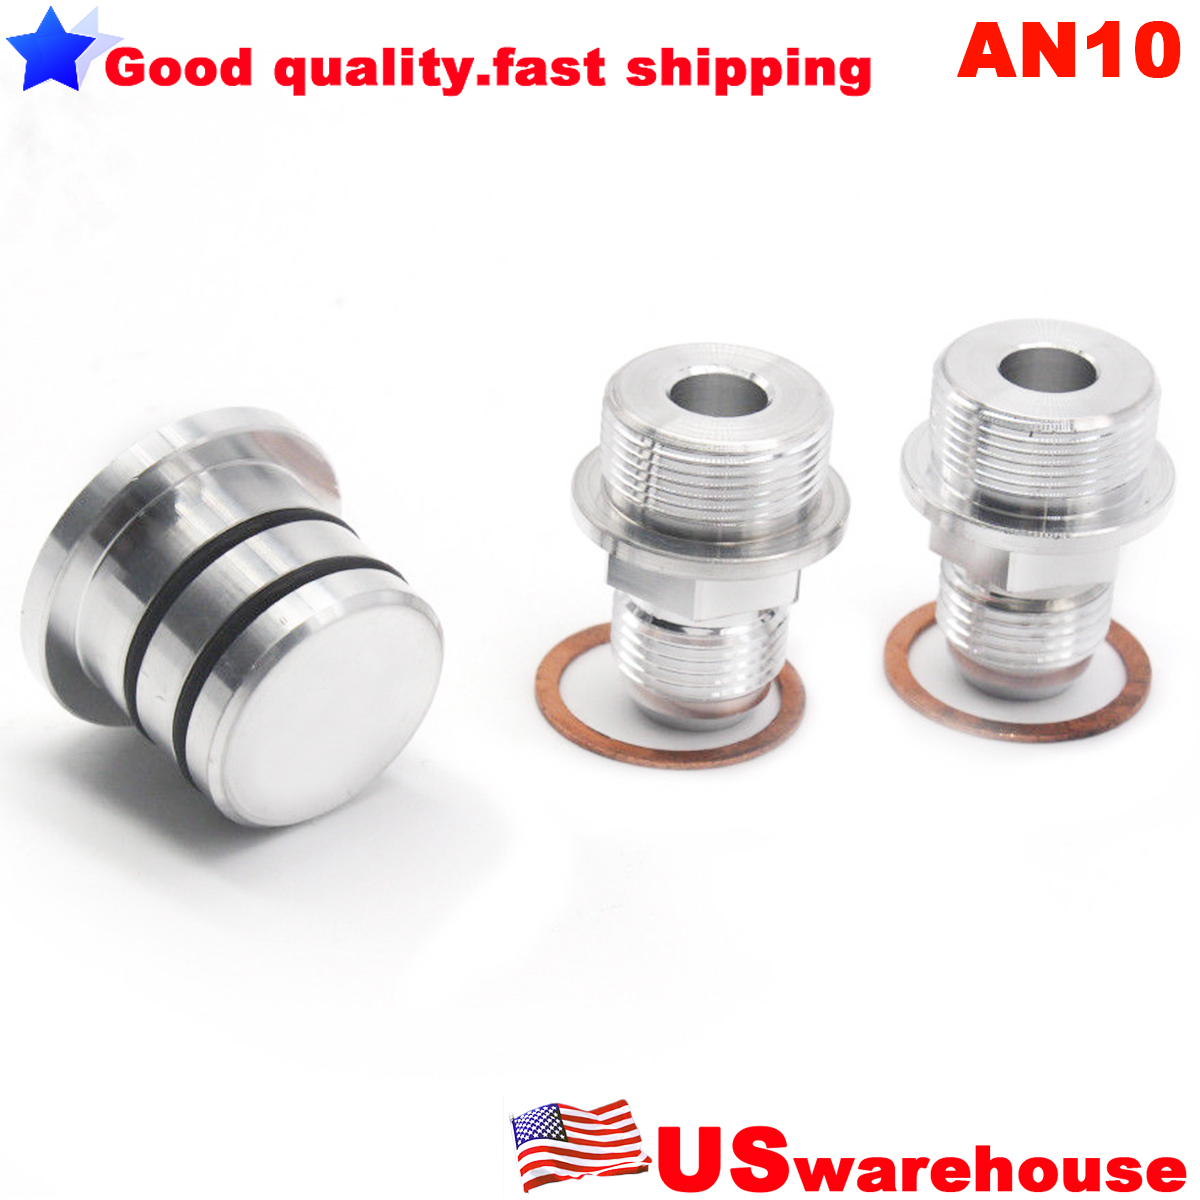 REAR BLOCK BREATHER FITTINGS AND PLUG FOR B16 B-16 B18C CATCH CAN M28 TO 10AN